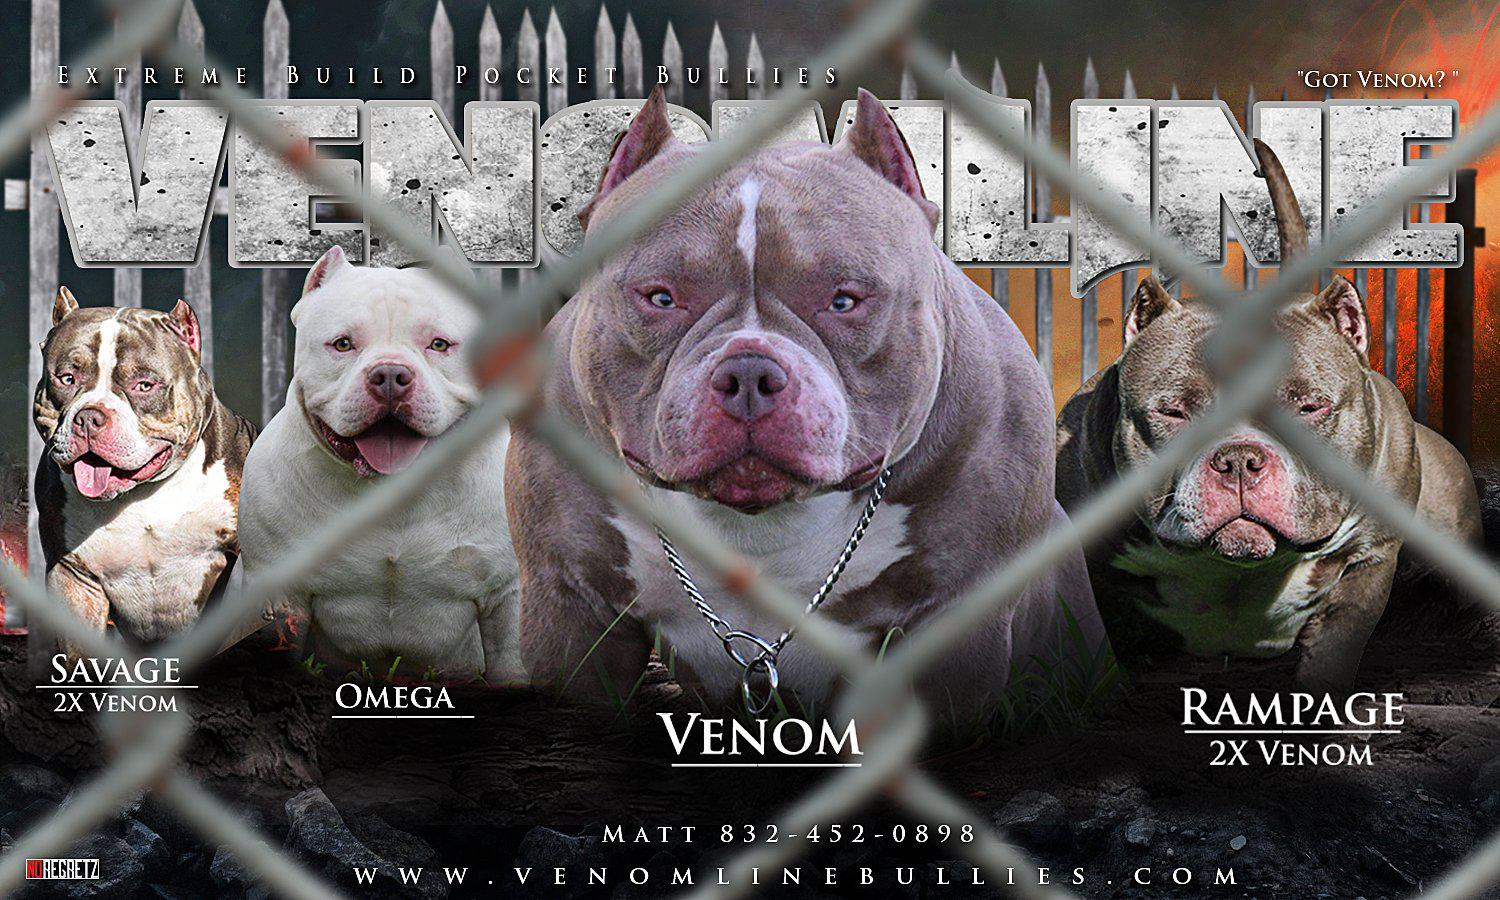 American Bully Stud Service, Top Pocket Bully Studs, ABKC, Pocket bully stud